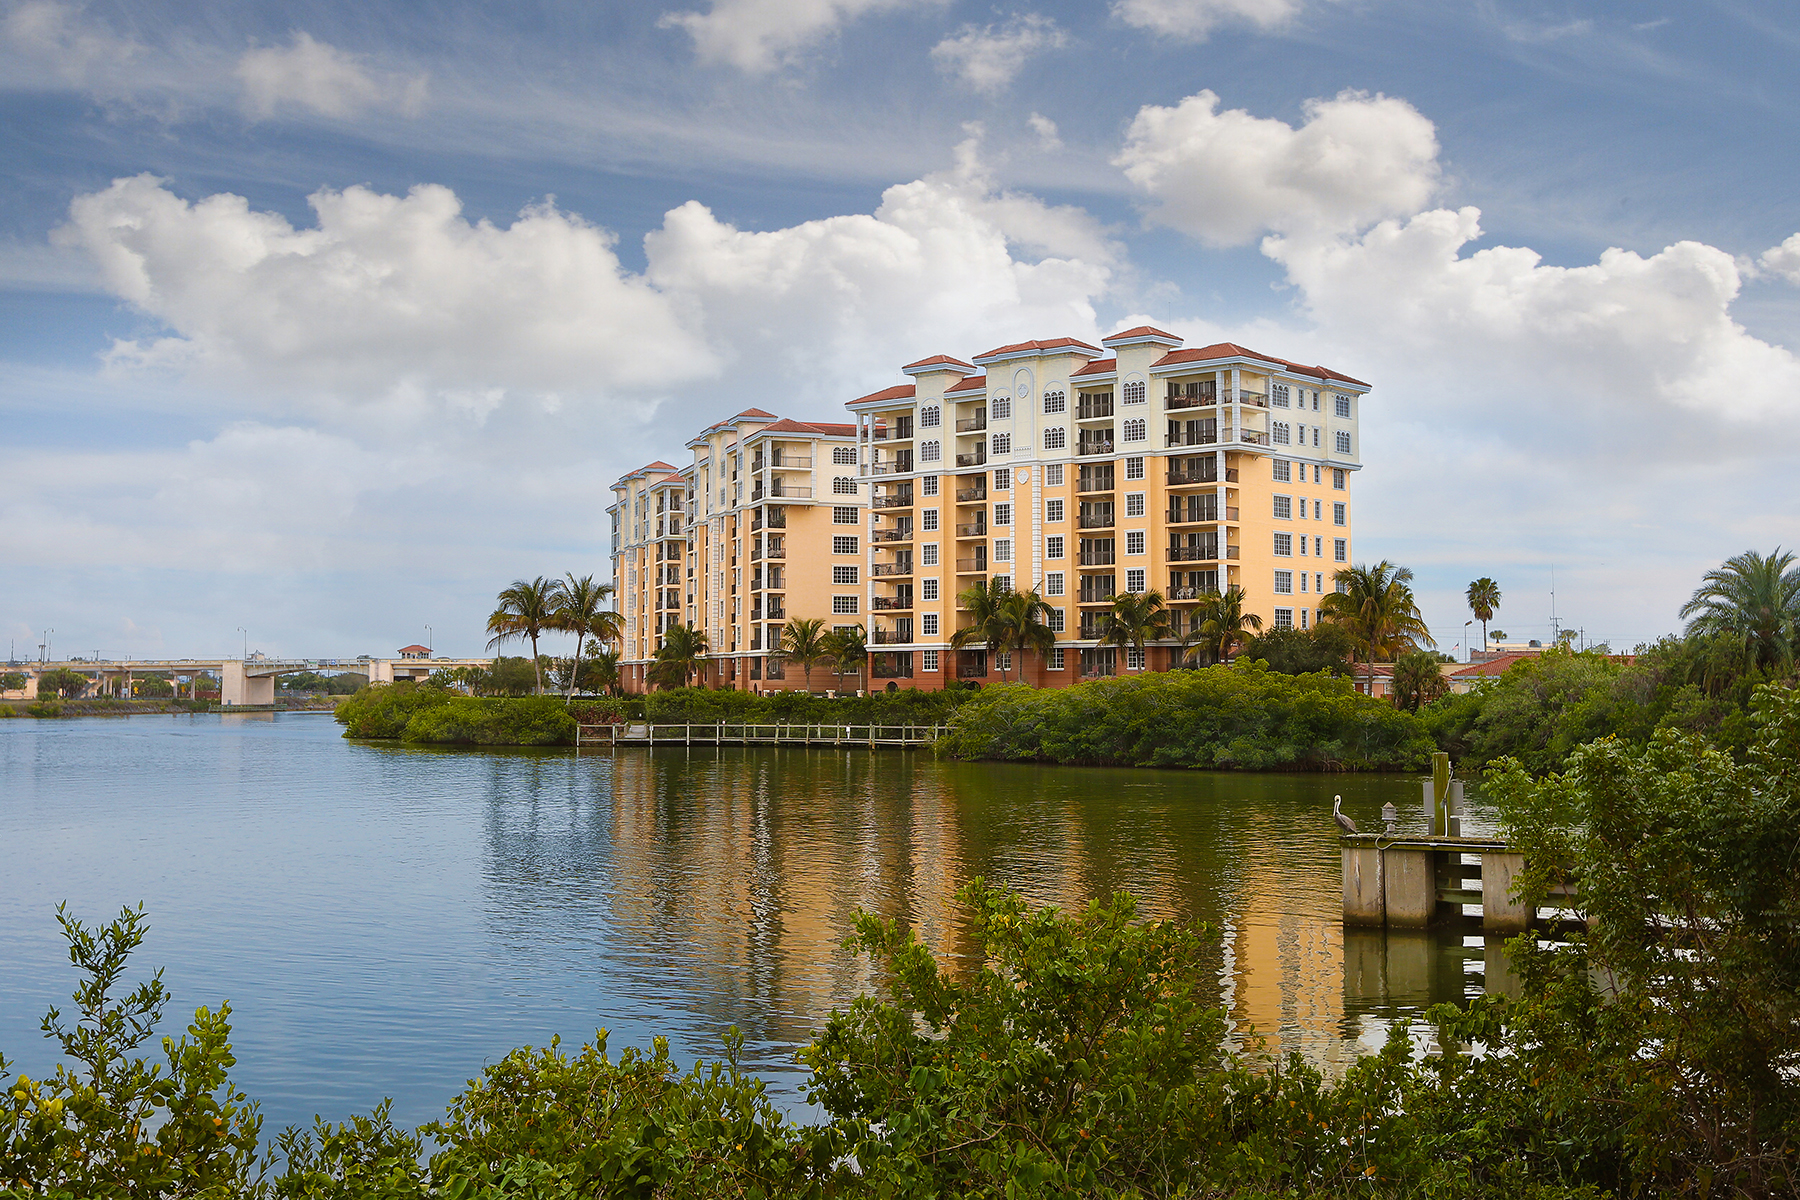 Condominium for Sale at WATERFRONT ON VENICE ISLAND 147 Tampa Ave E 404 Venice, Florida, 34285 United States